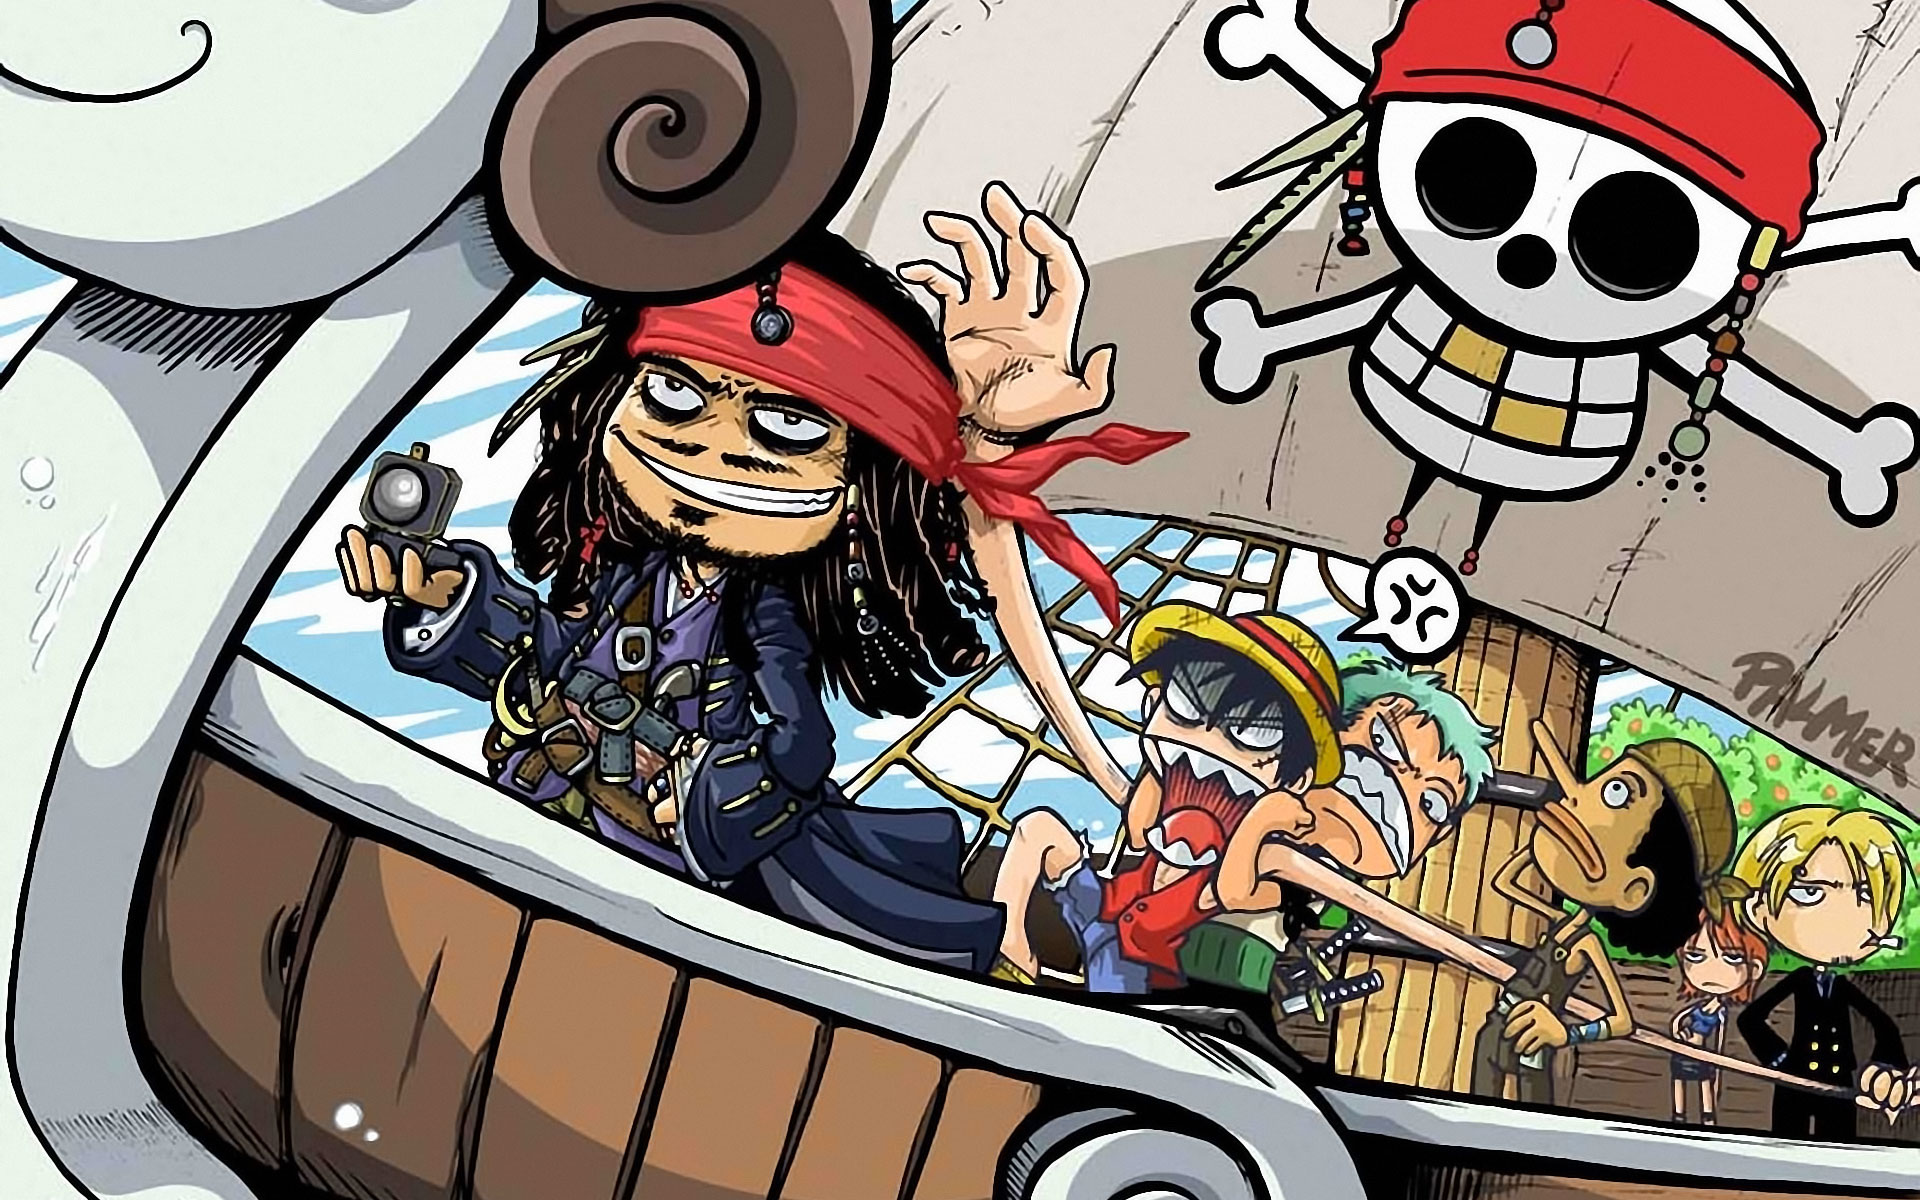 One Piece Wallpaper with Jack Sparrow - One Piece Wallpaper with Jack Sparrow